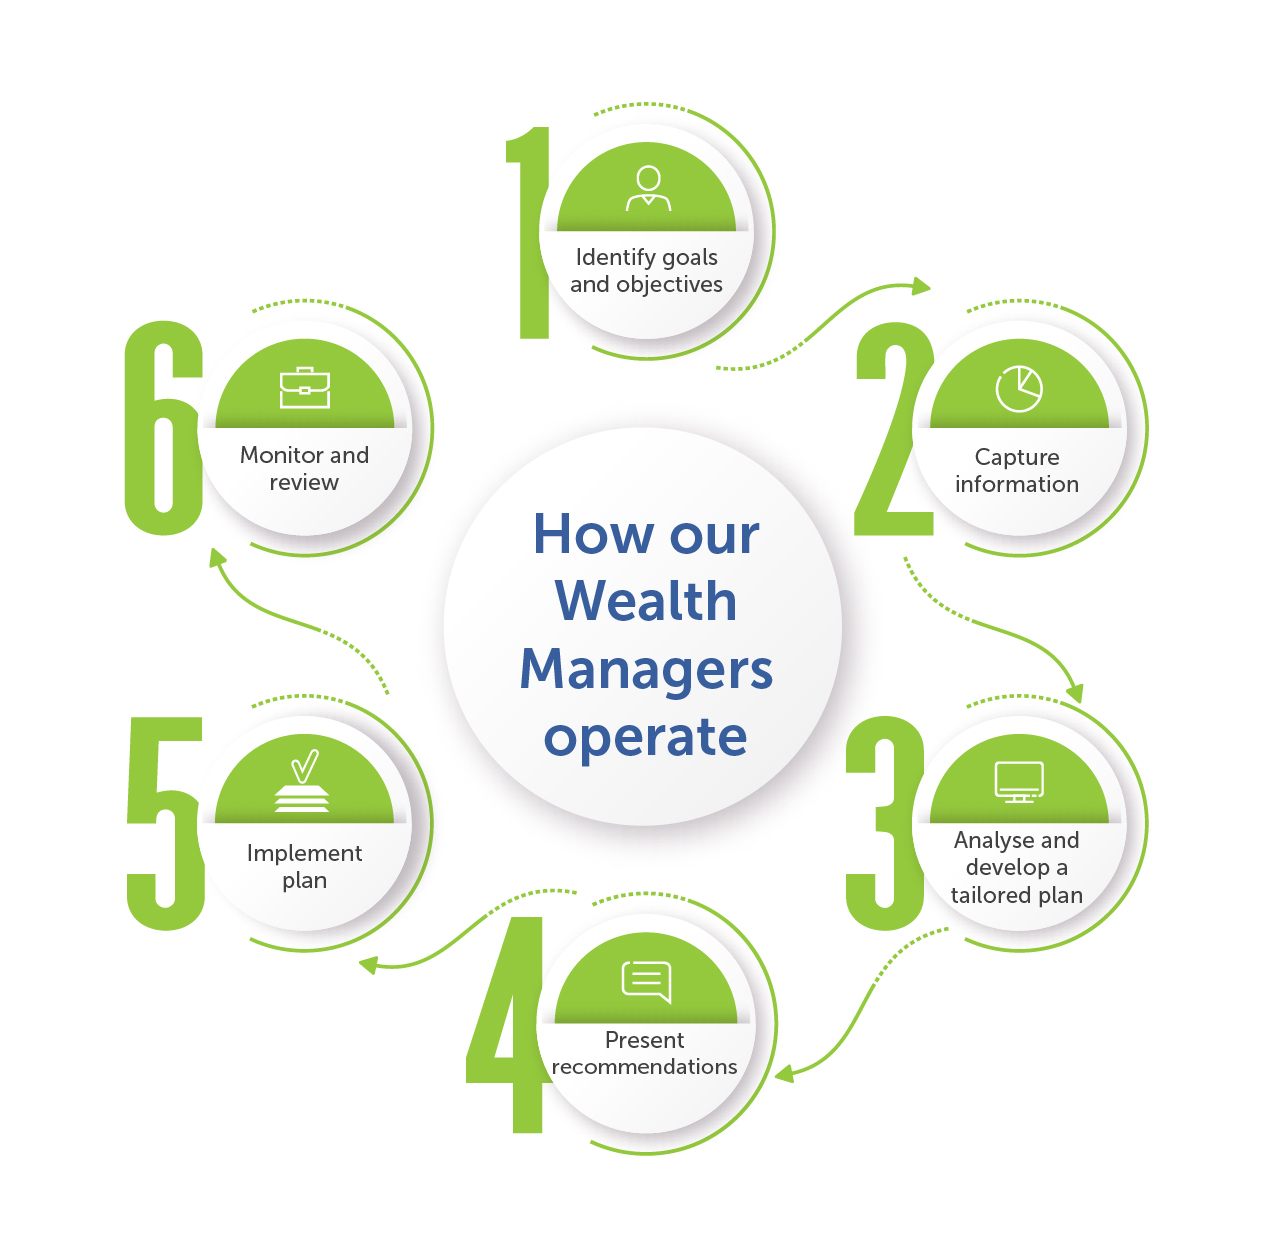 INFOGRAPHIC_The way our wealth managers operate_v2-01